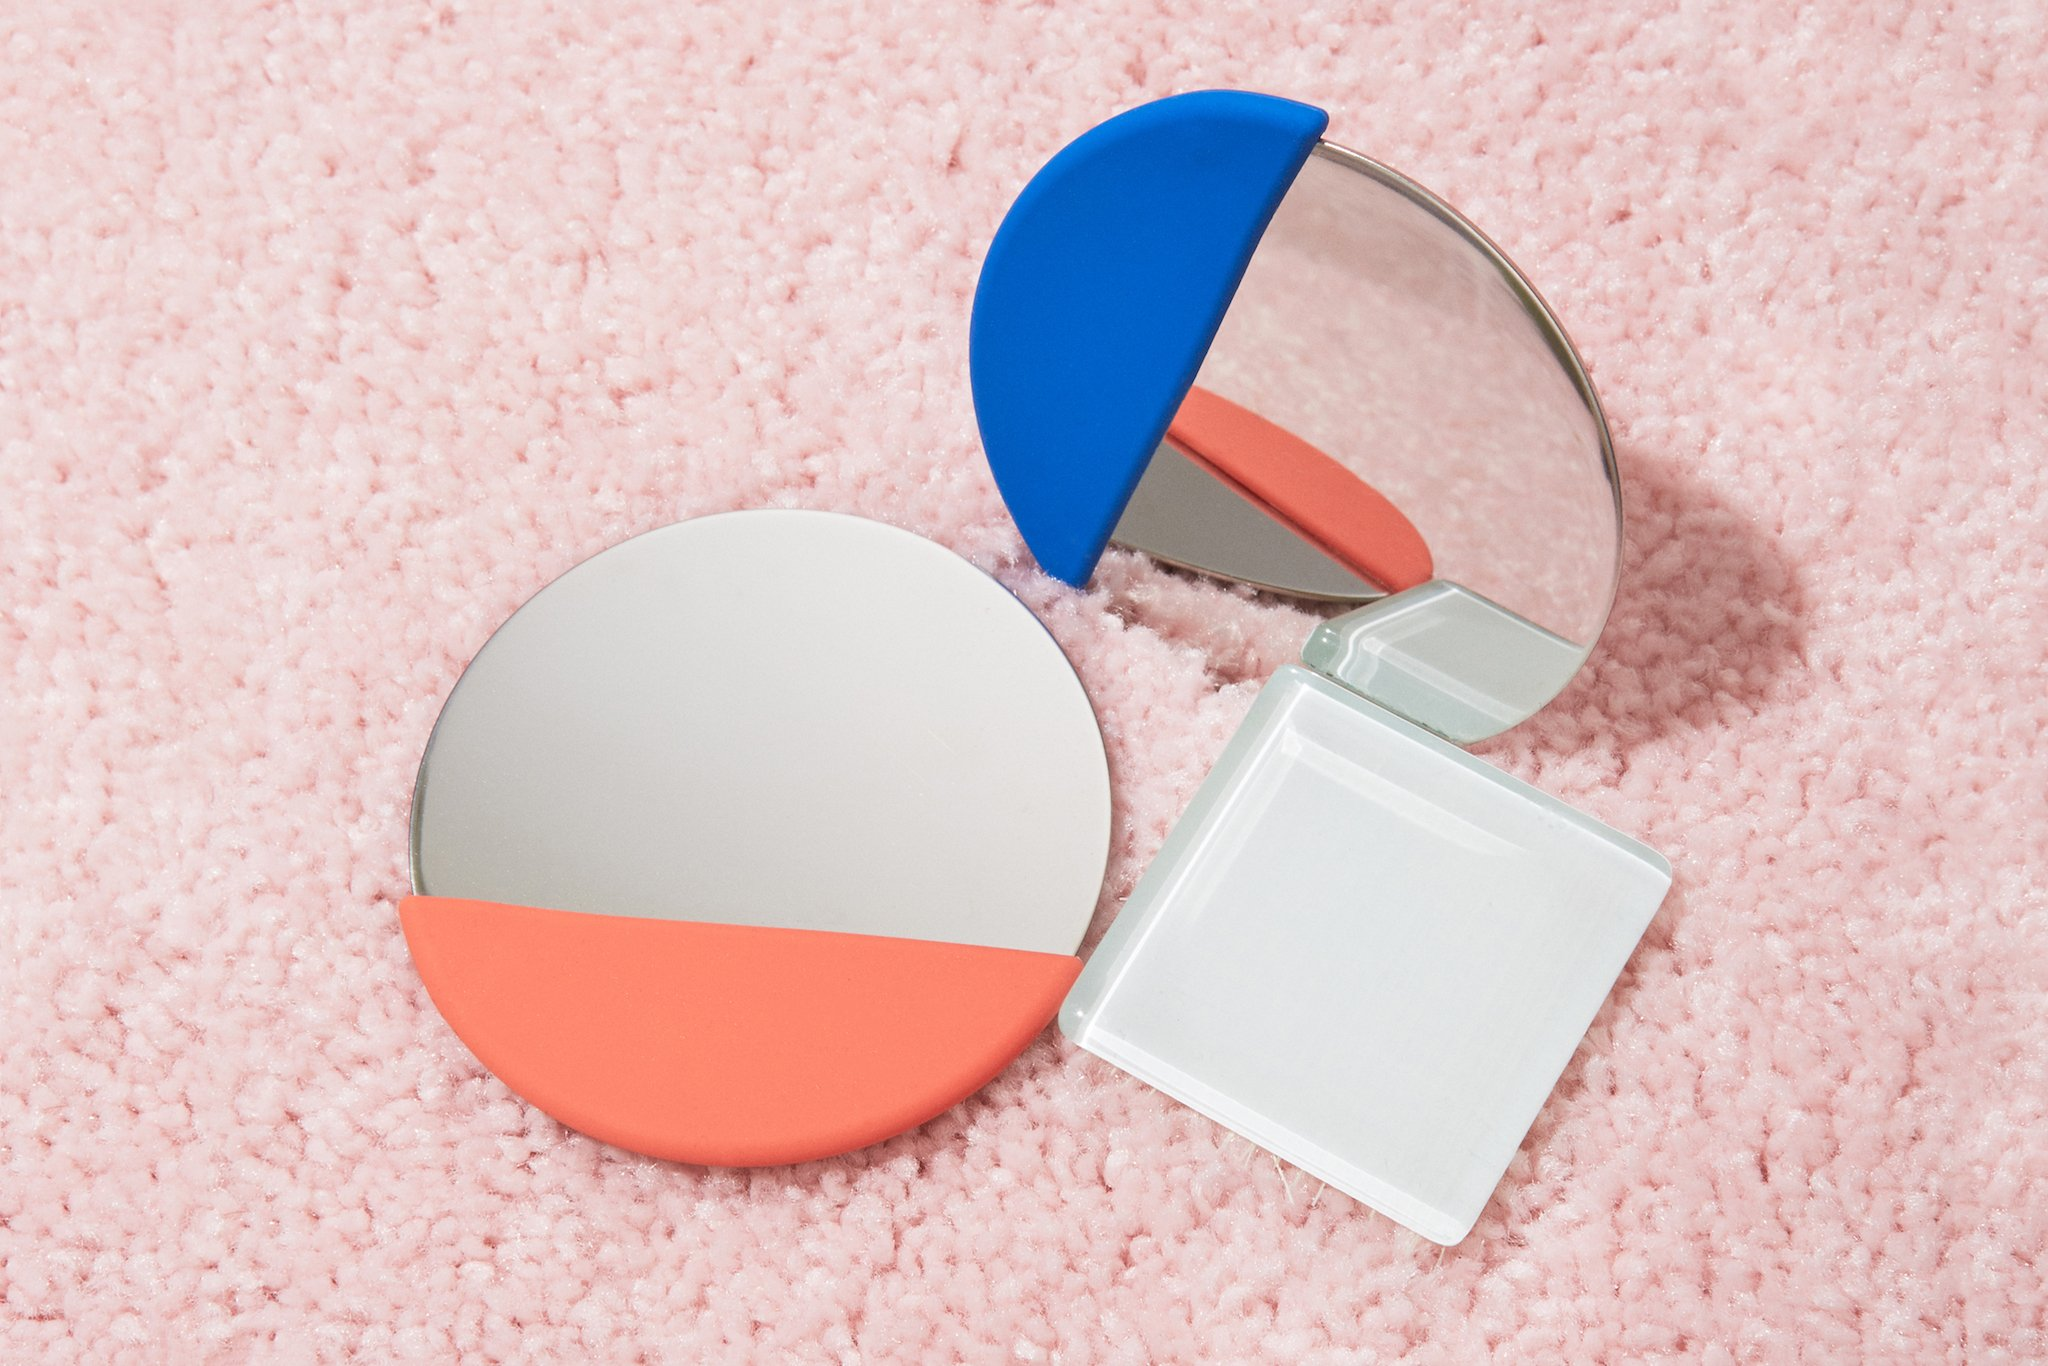 Utility Pocket Mirror  - Official picture